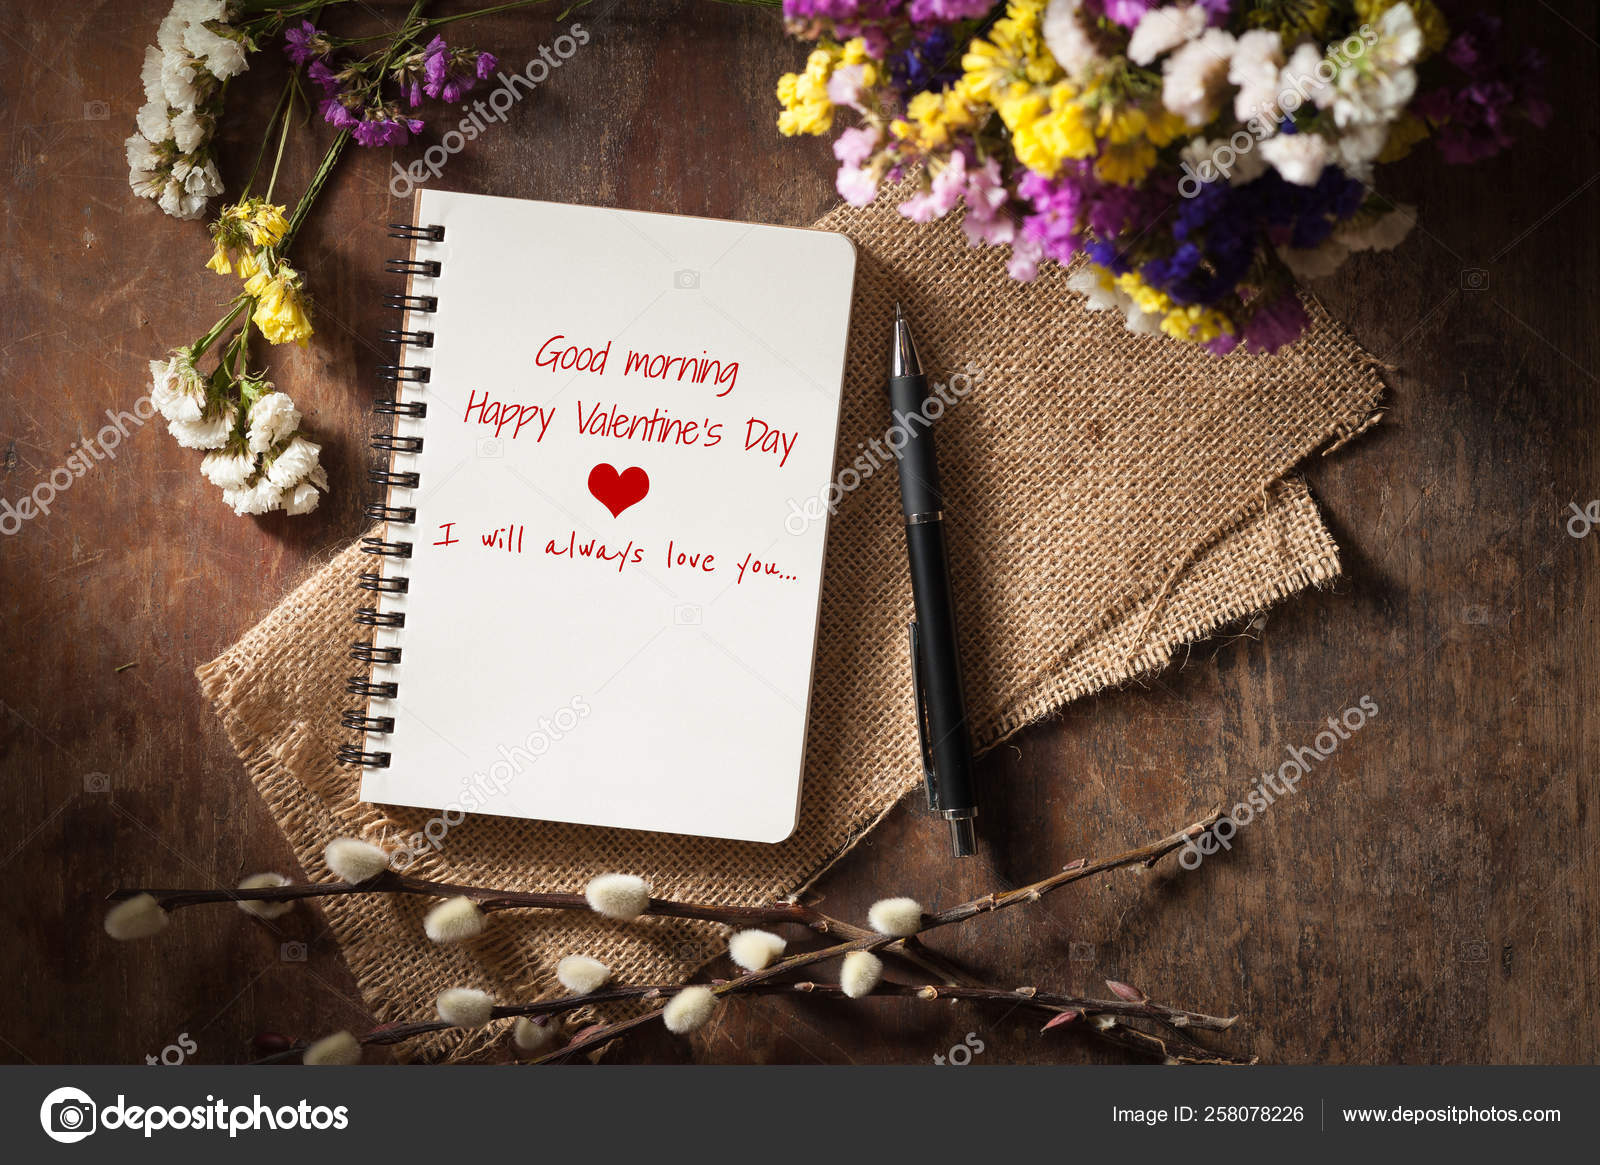 Good Morning Happy Valentine Day Always Love You Written Opened Stock Photo C Yayimages 258078226